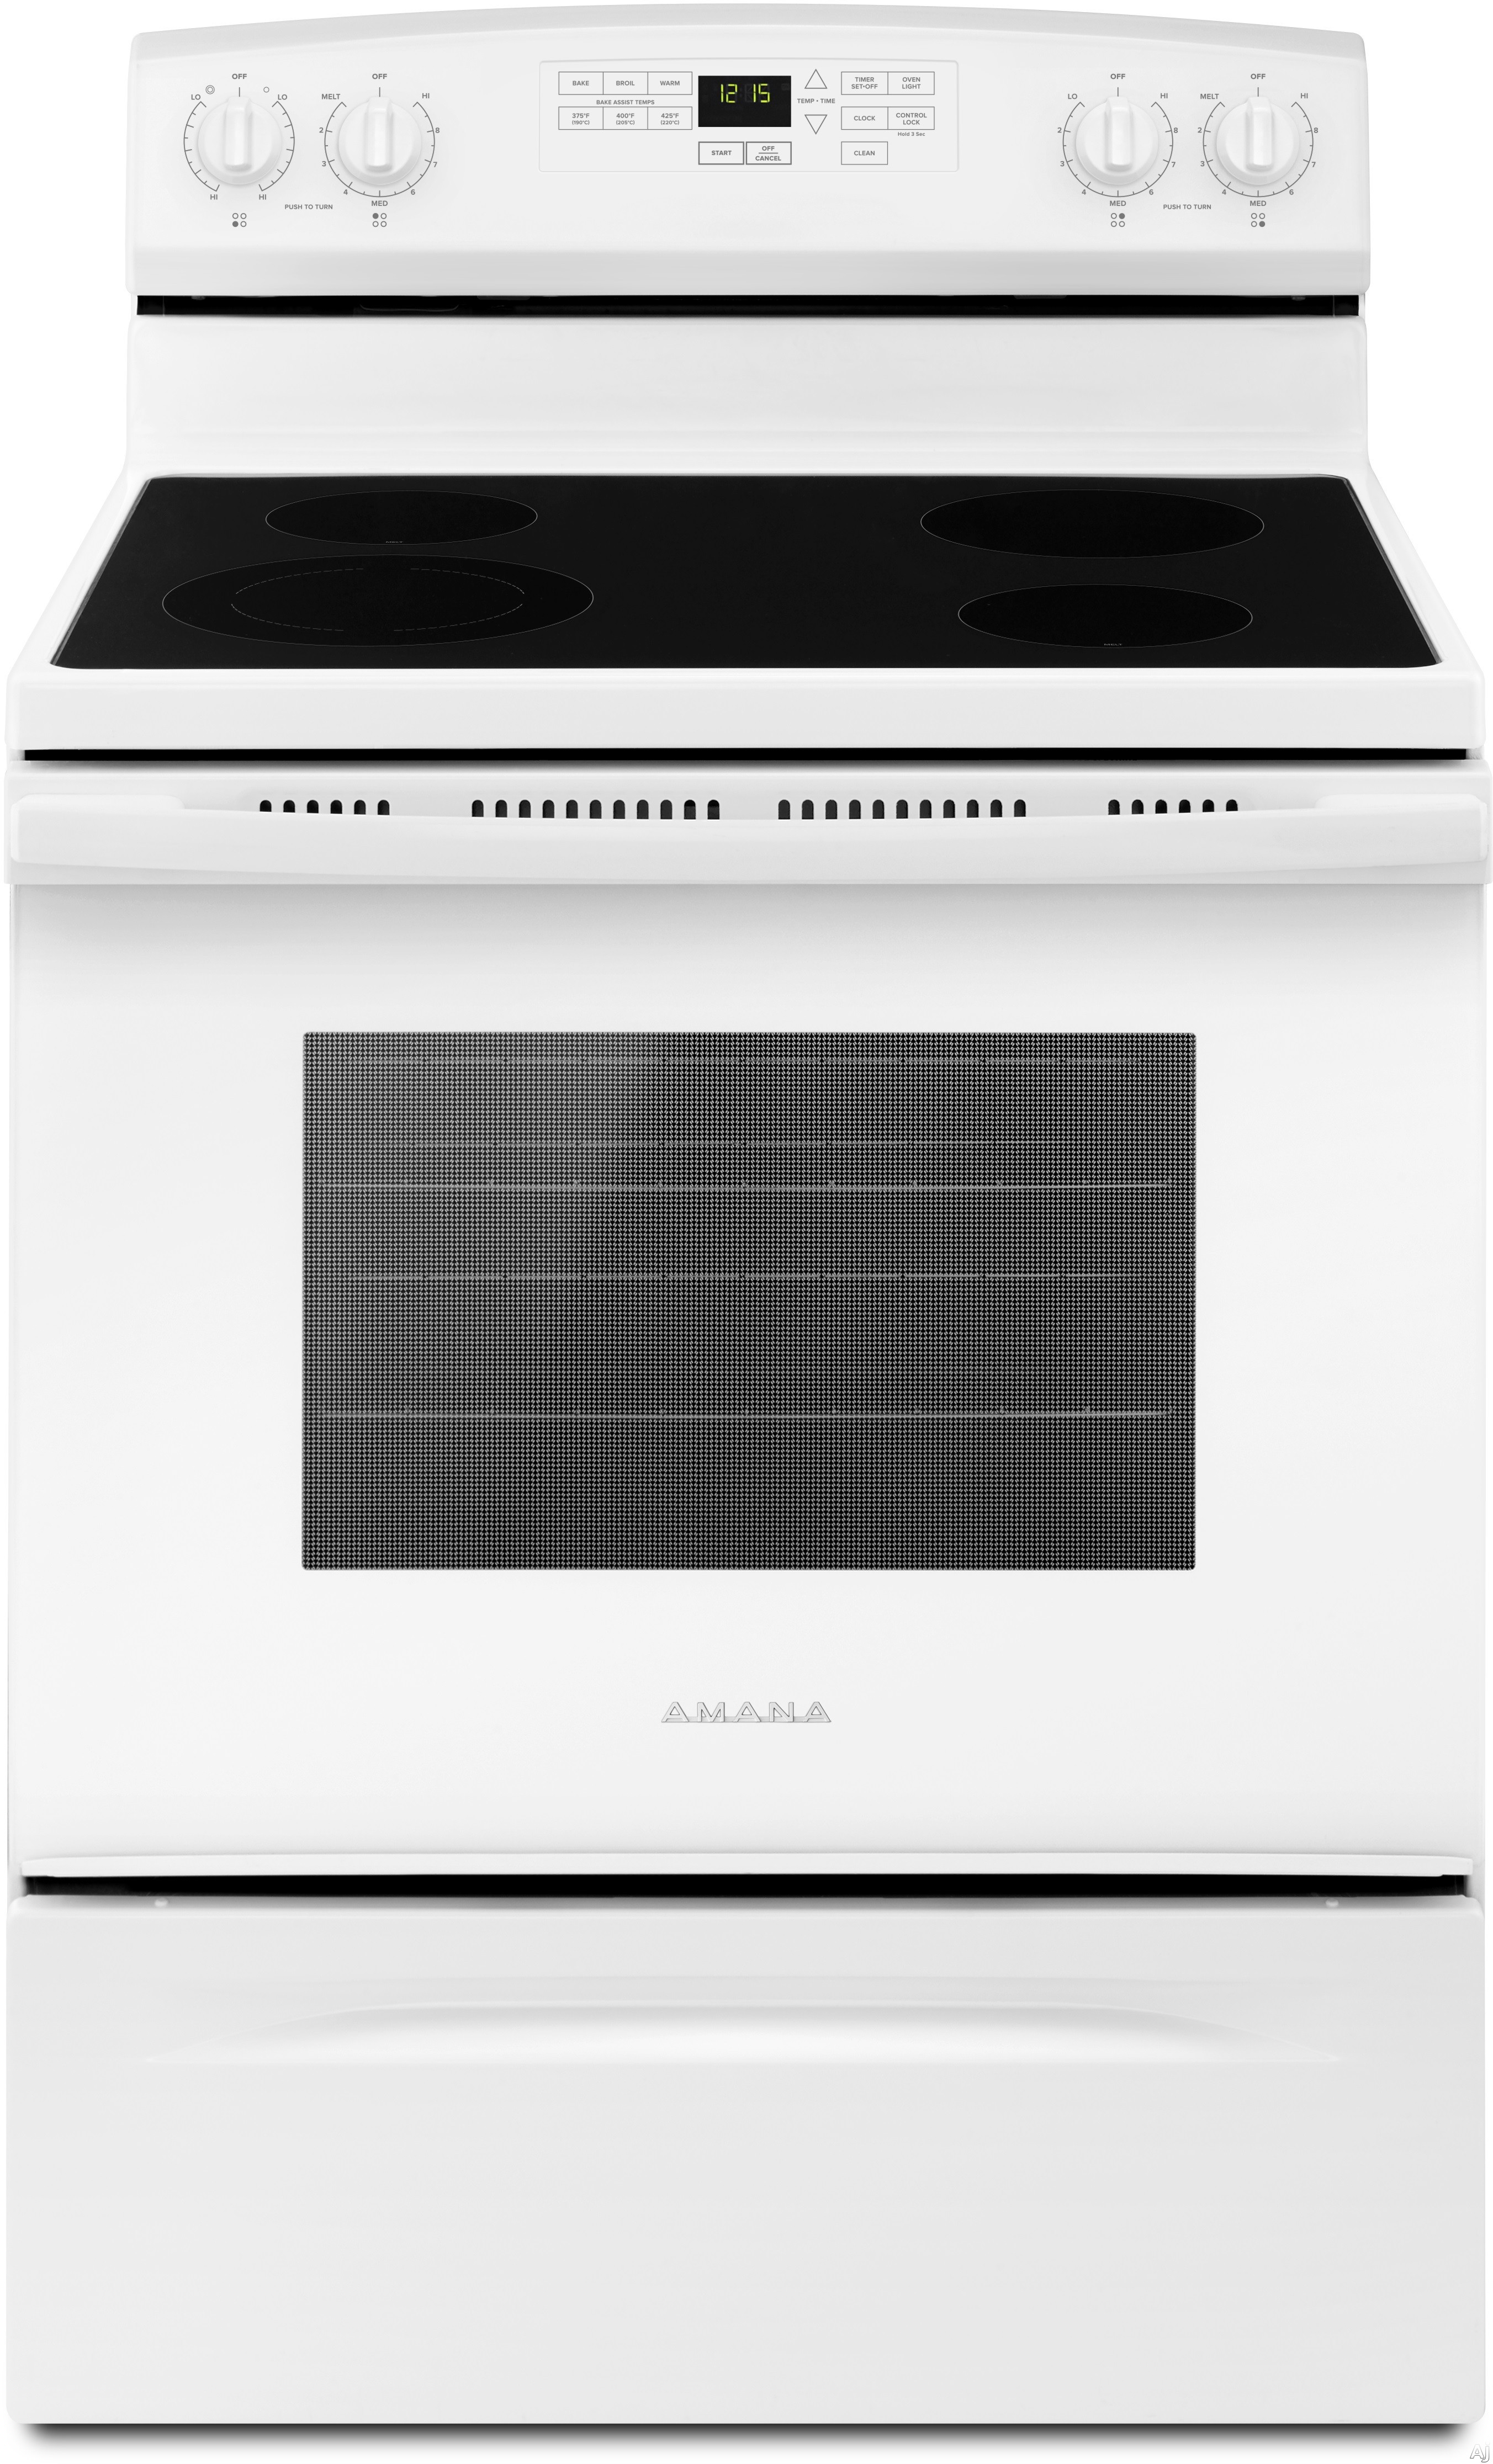 Amana AER6603SFW 30 Inch Electric Range with 4.8 cu. ft. Capacity, 4 Radiant Heating Elements, Custom Broil, Temp Assure Cooking System, Bake Assist Temps, Warm Hold, Oven Lockout, Extra-Large Window, Sabbath Mode and Self Clean: White